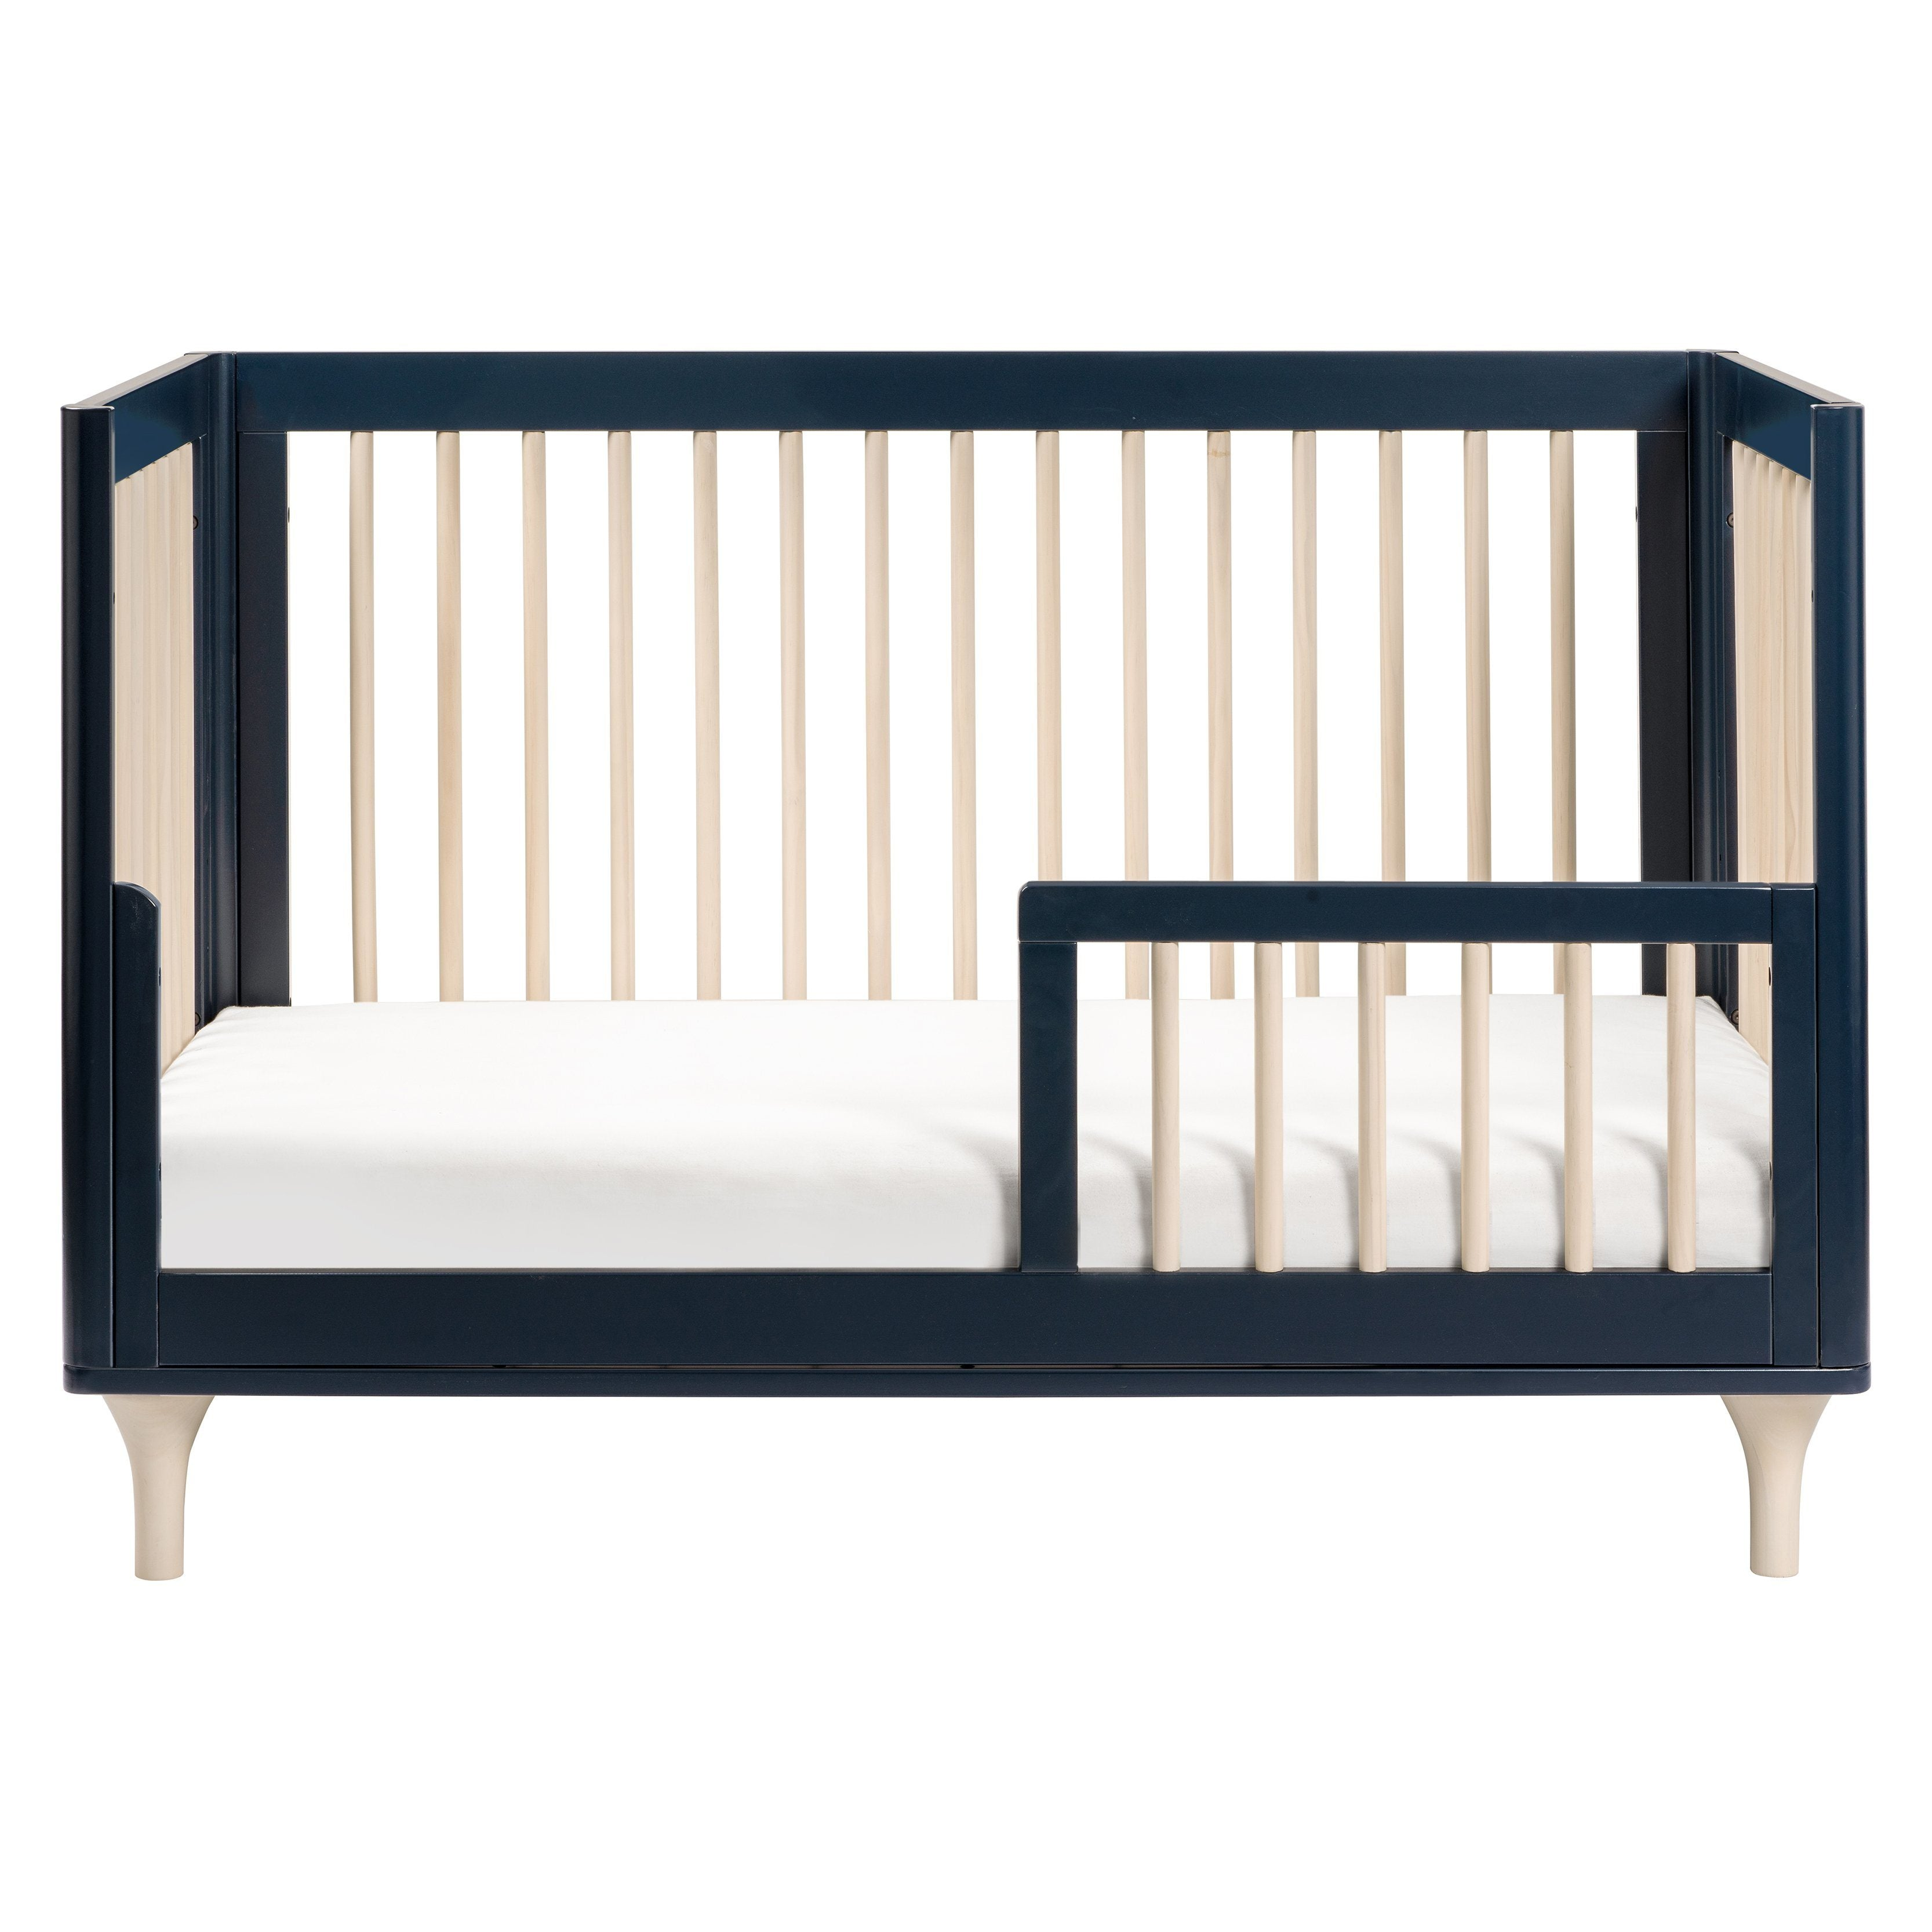 Lolly 3-in-1 Convertible Crib with Toddler Bed Conversion Kit - Project Nursery